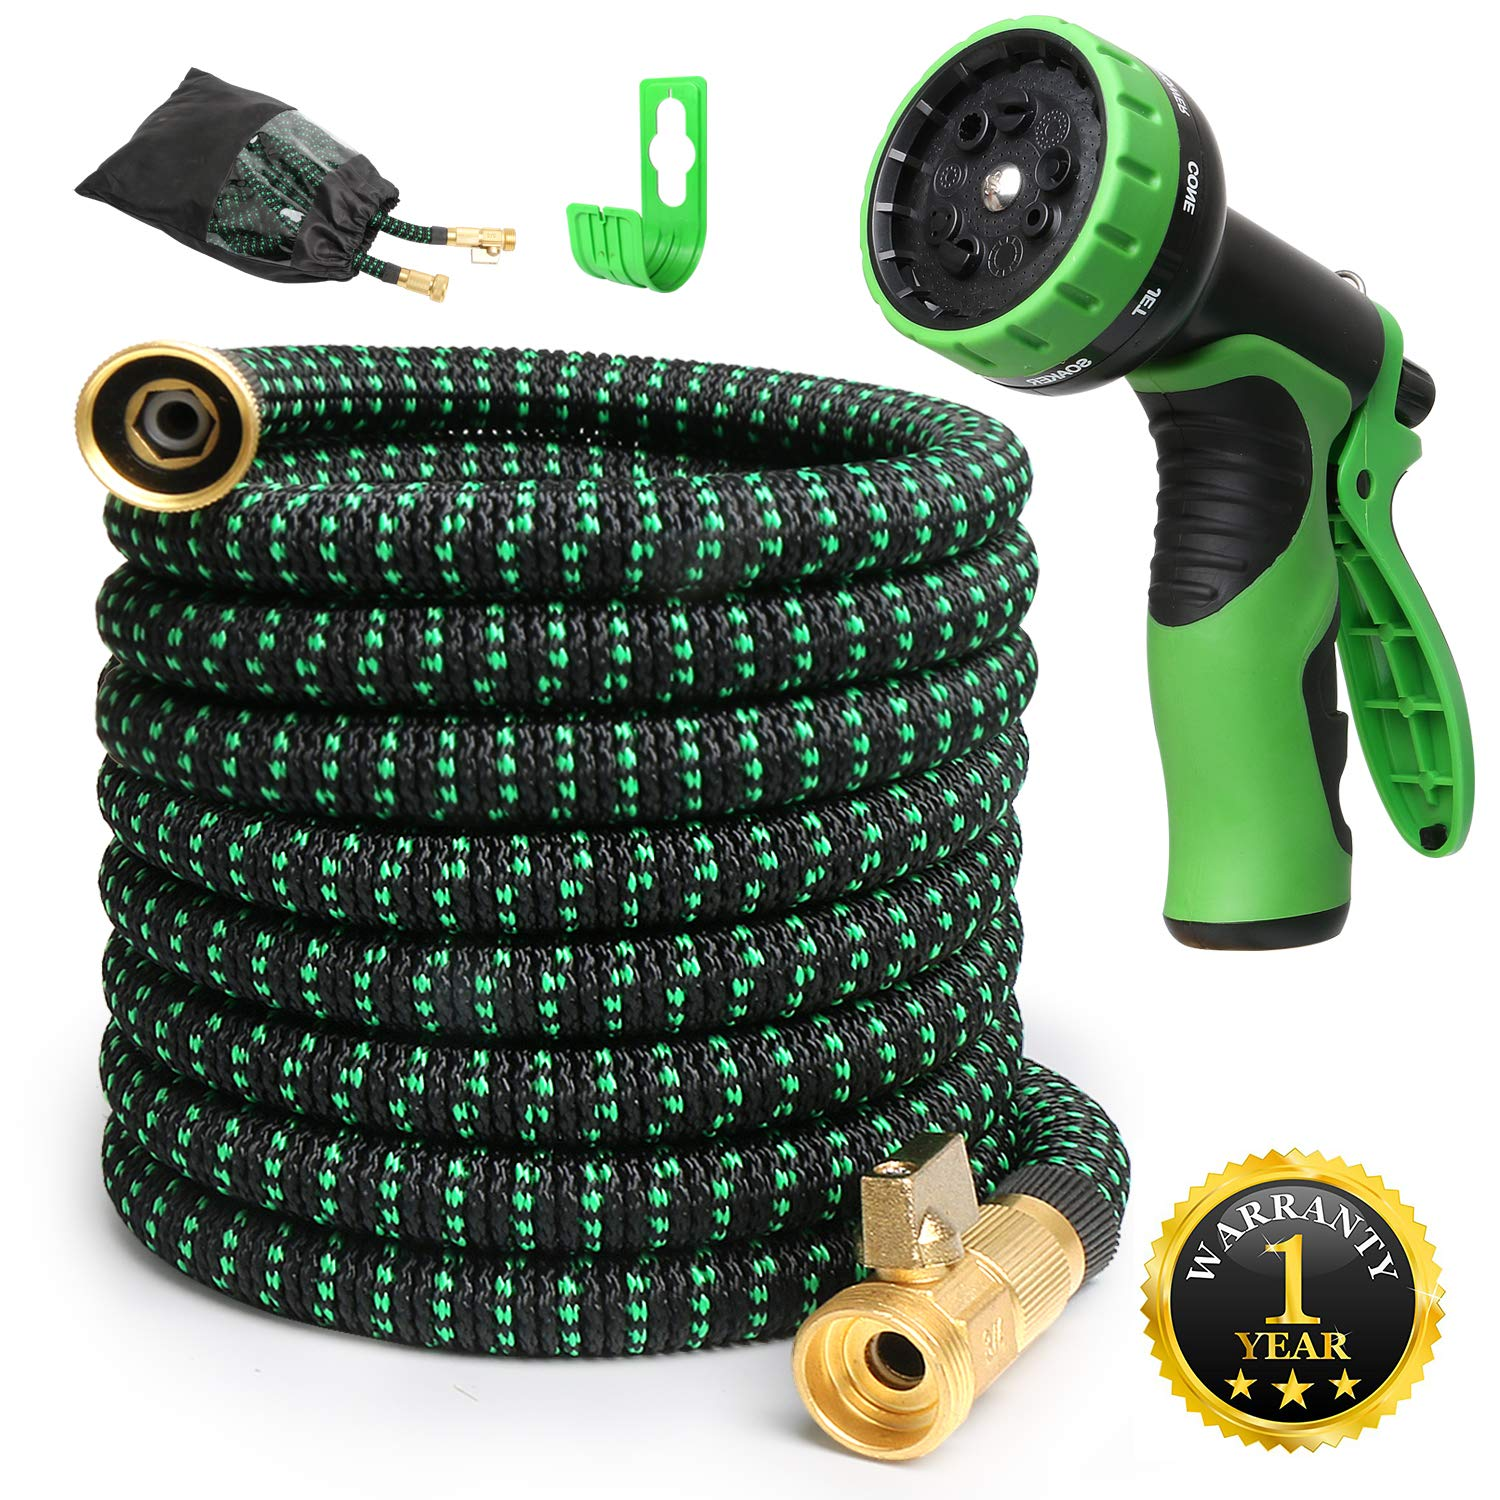 50feet Expandable Garden Hose Expandable Water Hoses with 3/4 Inch Solid Brass and 9 Function Nozzle Flexible Expanding Lightweight Gardening Hose Outdoor Yard Hoses Car Wash Hose Non-kink